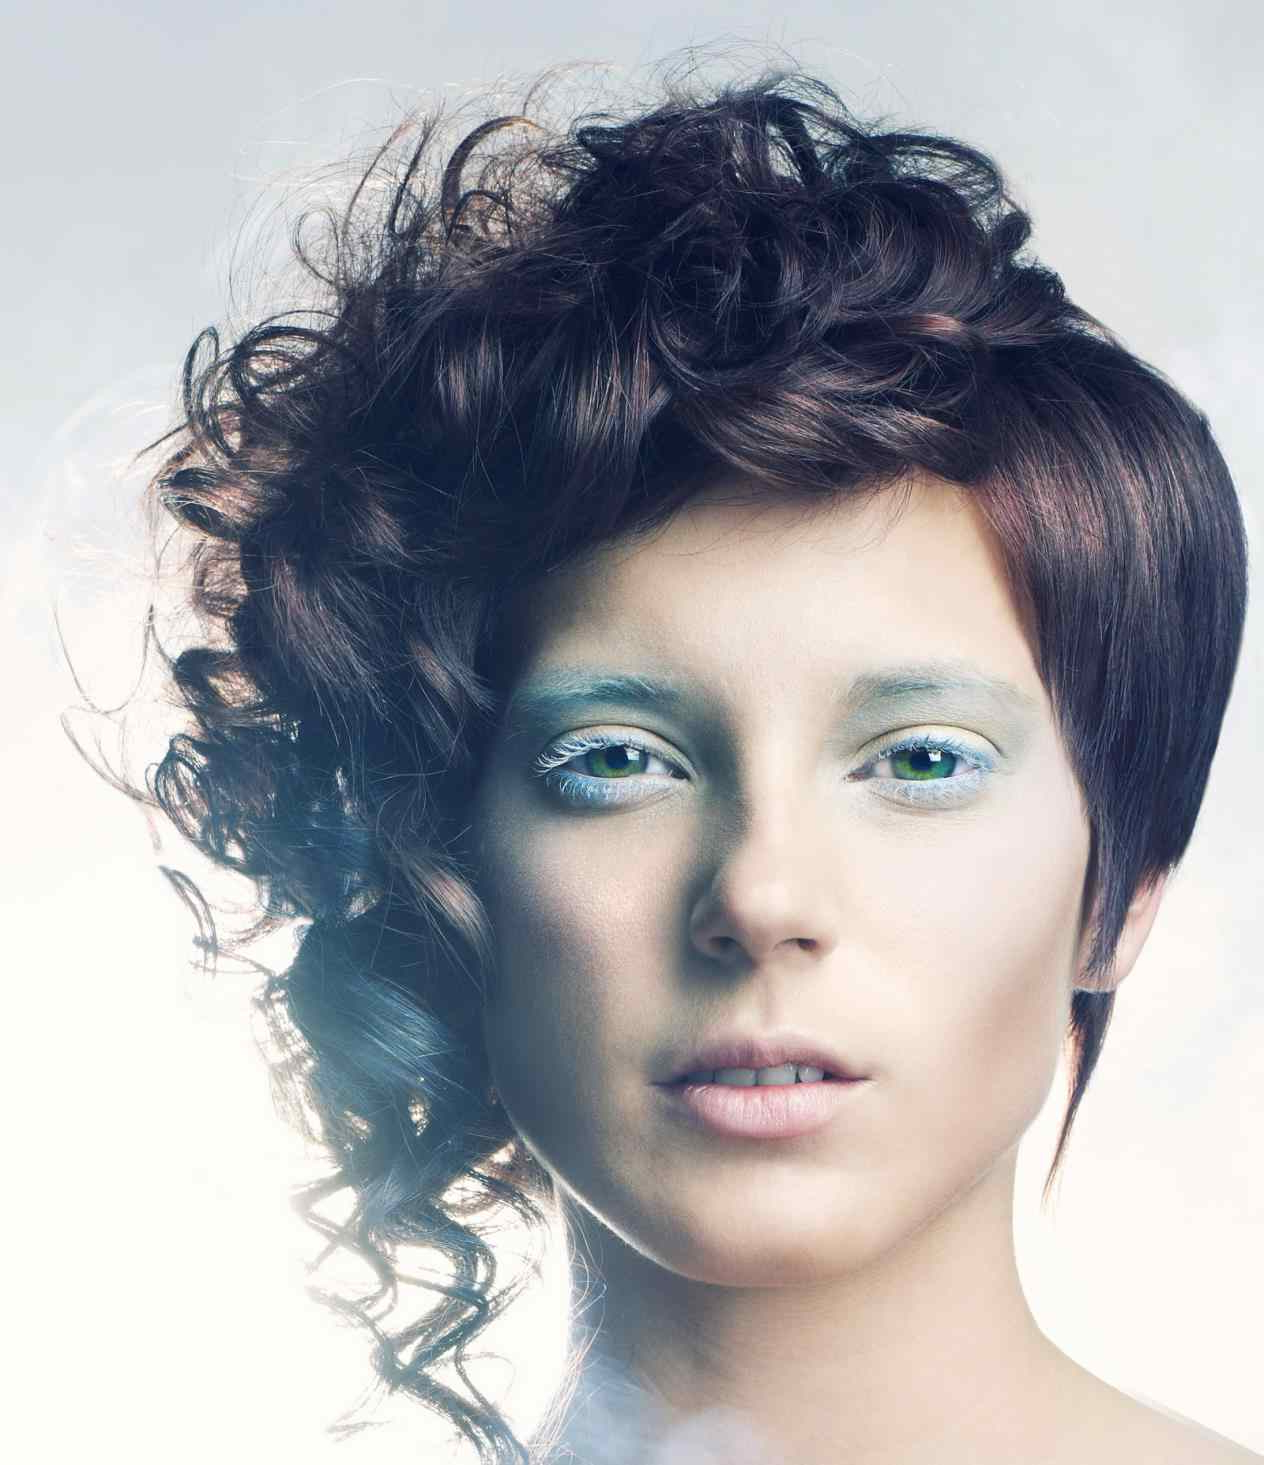 Short Hairstyles Girls With Hair Mohawk Very Curly Pixie Cut Tumblr For Short Curly Hairstyles Tumblr (View 12 of 25)